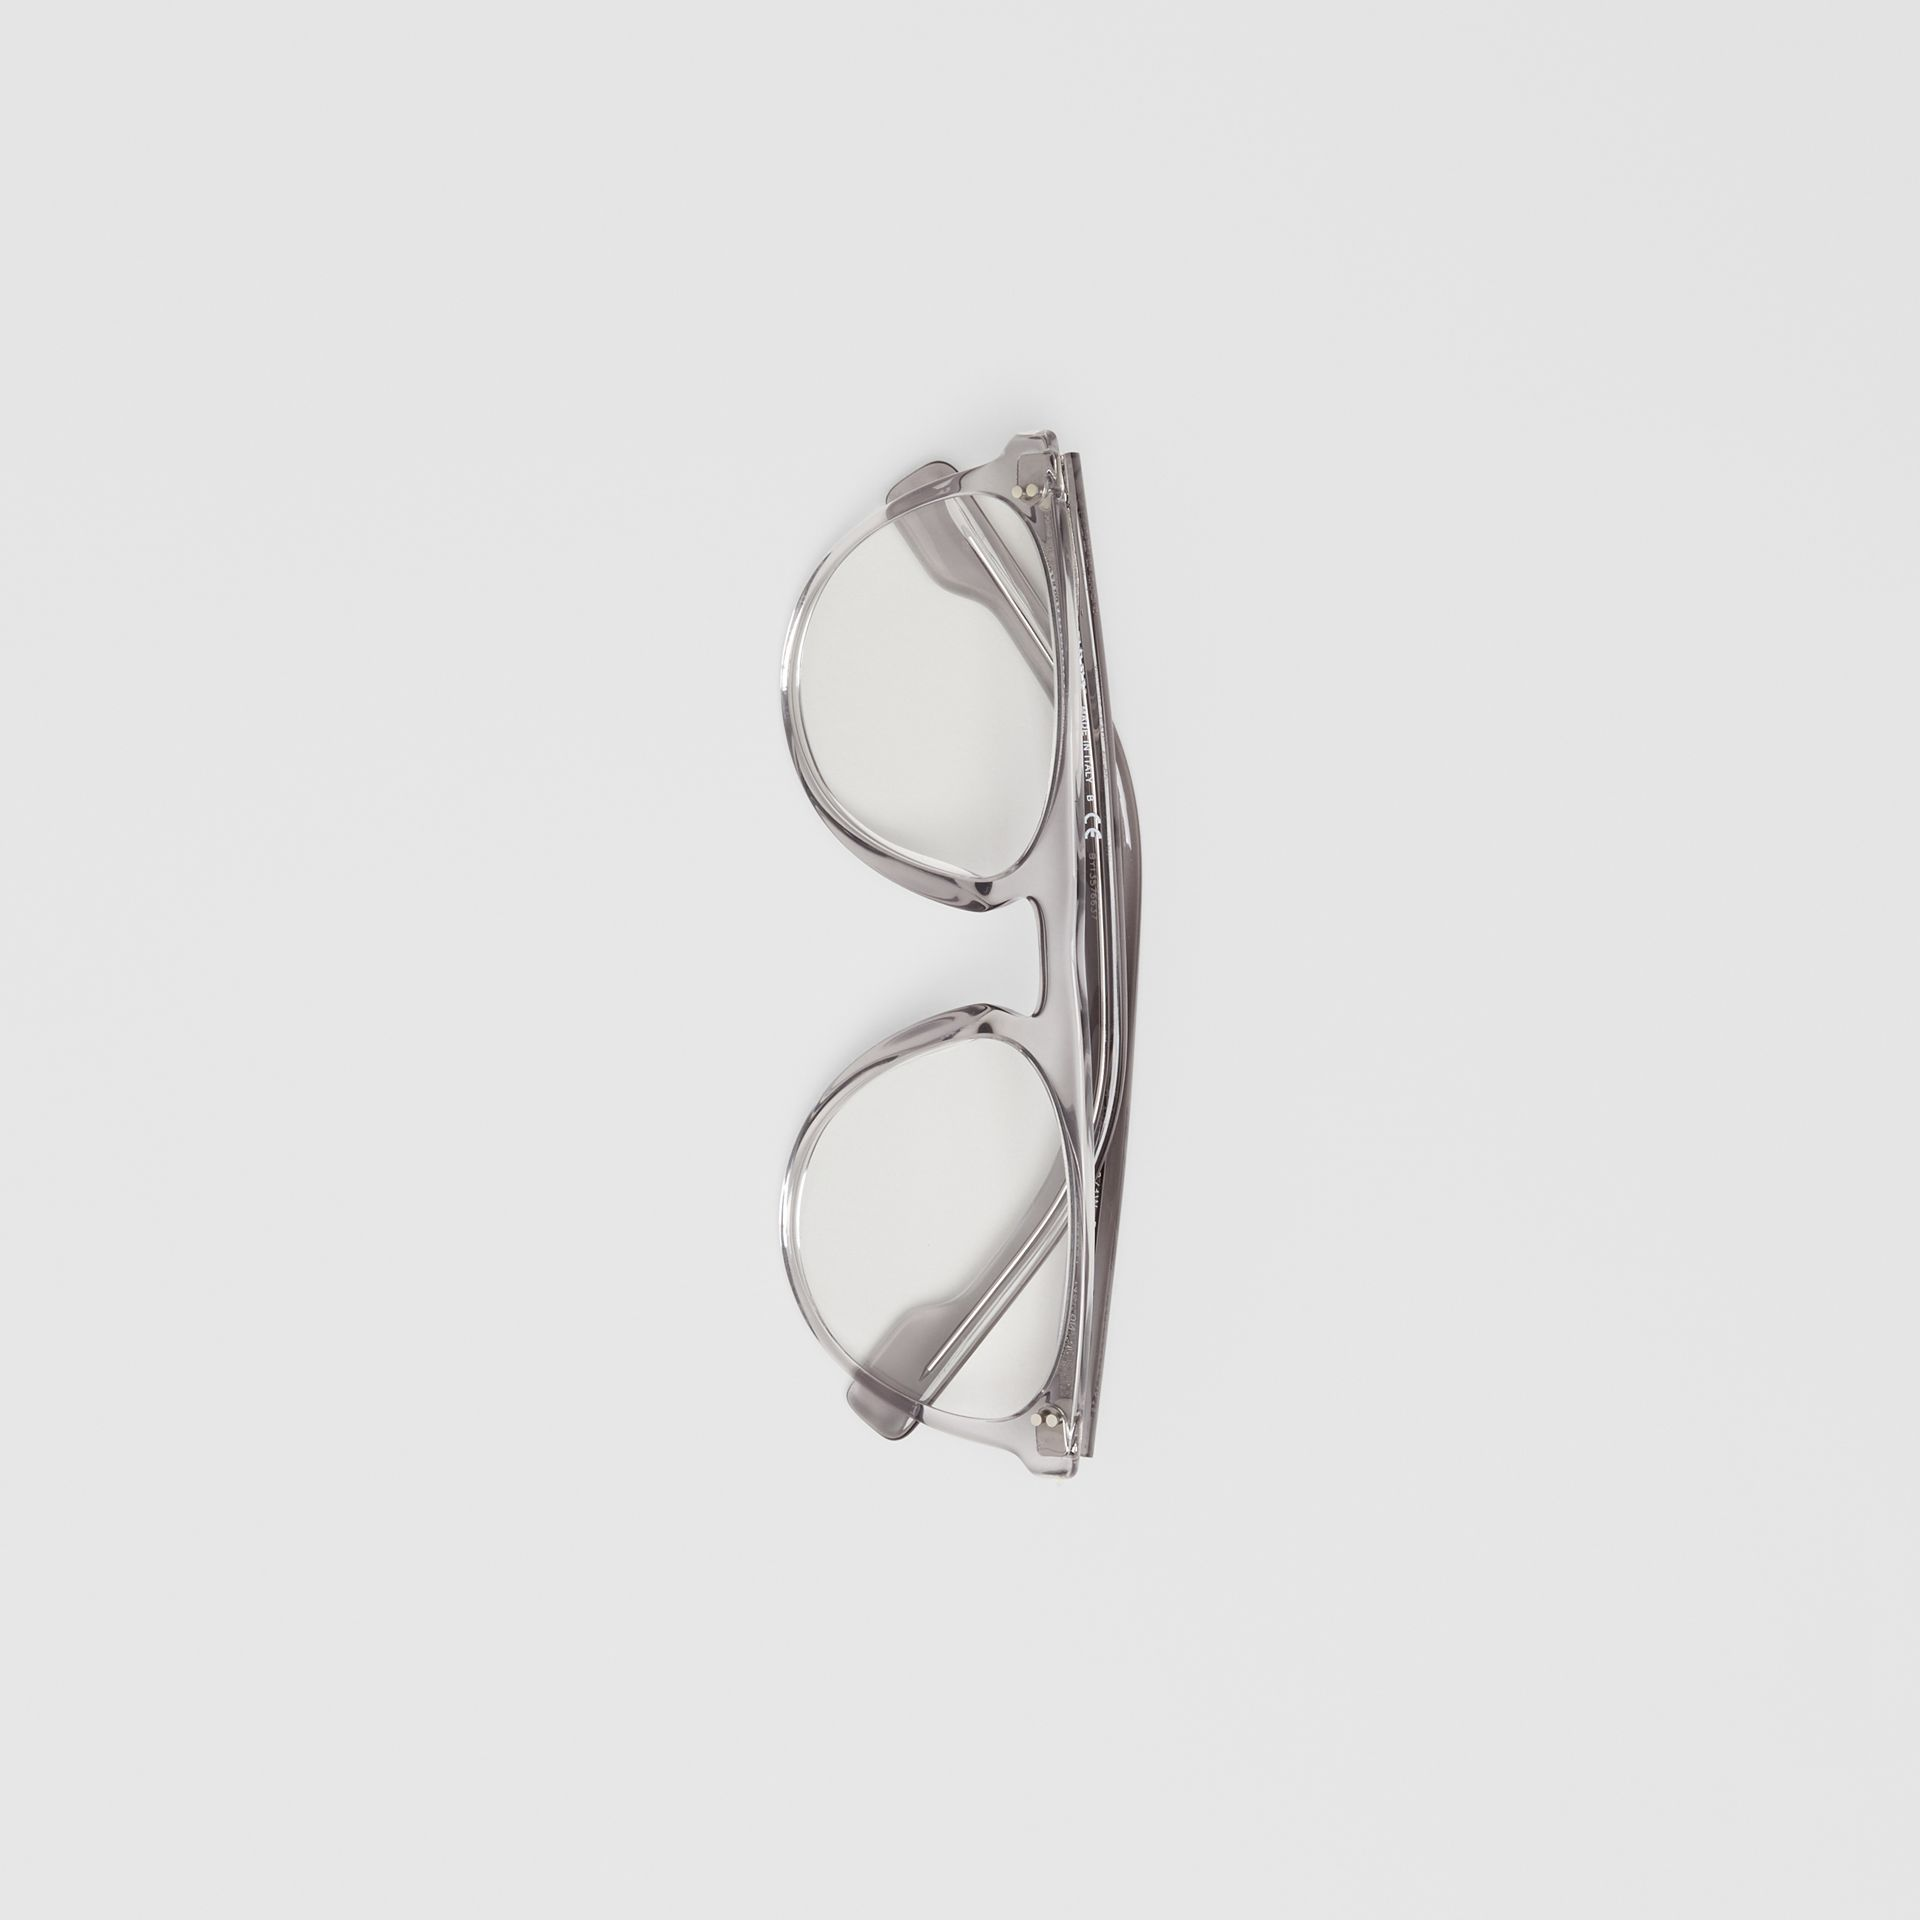 Keyhole D-shaped Optical Frames in Grey - Men | Burberry Australia - gallery image 3